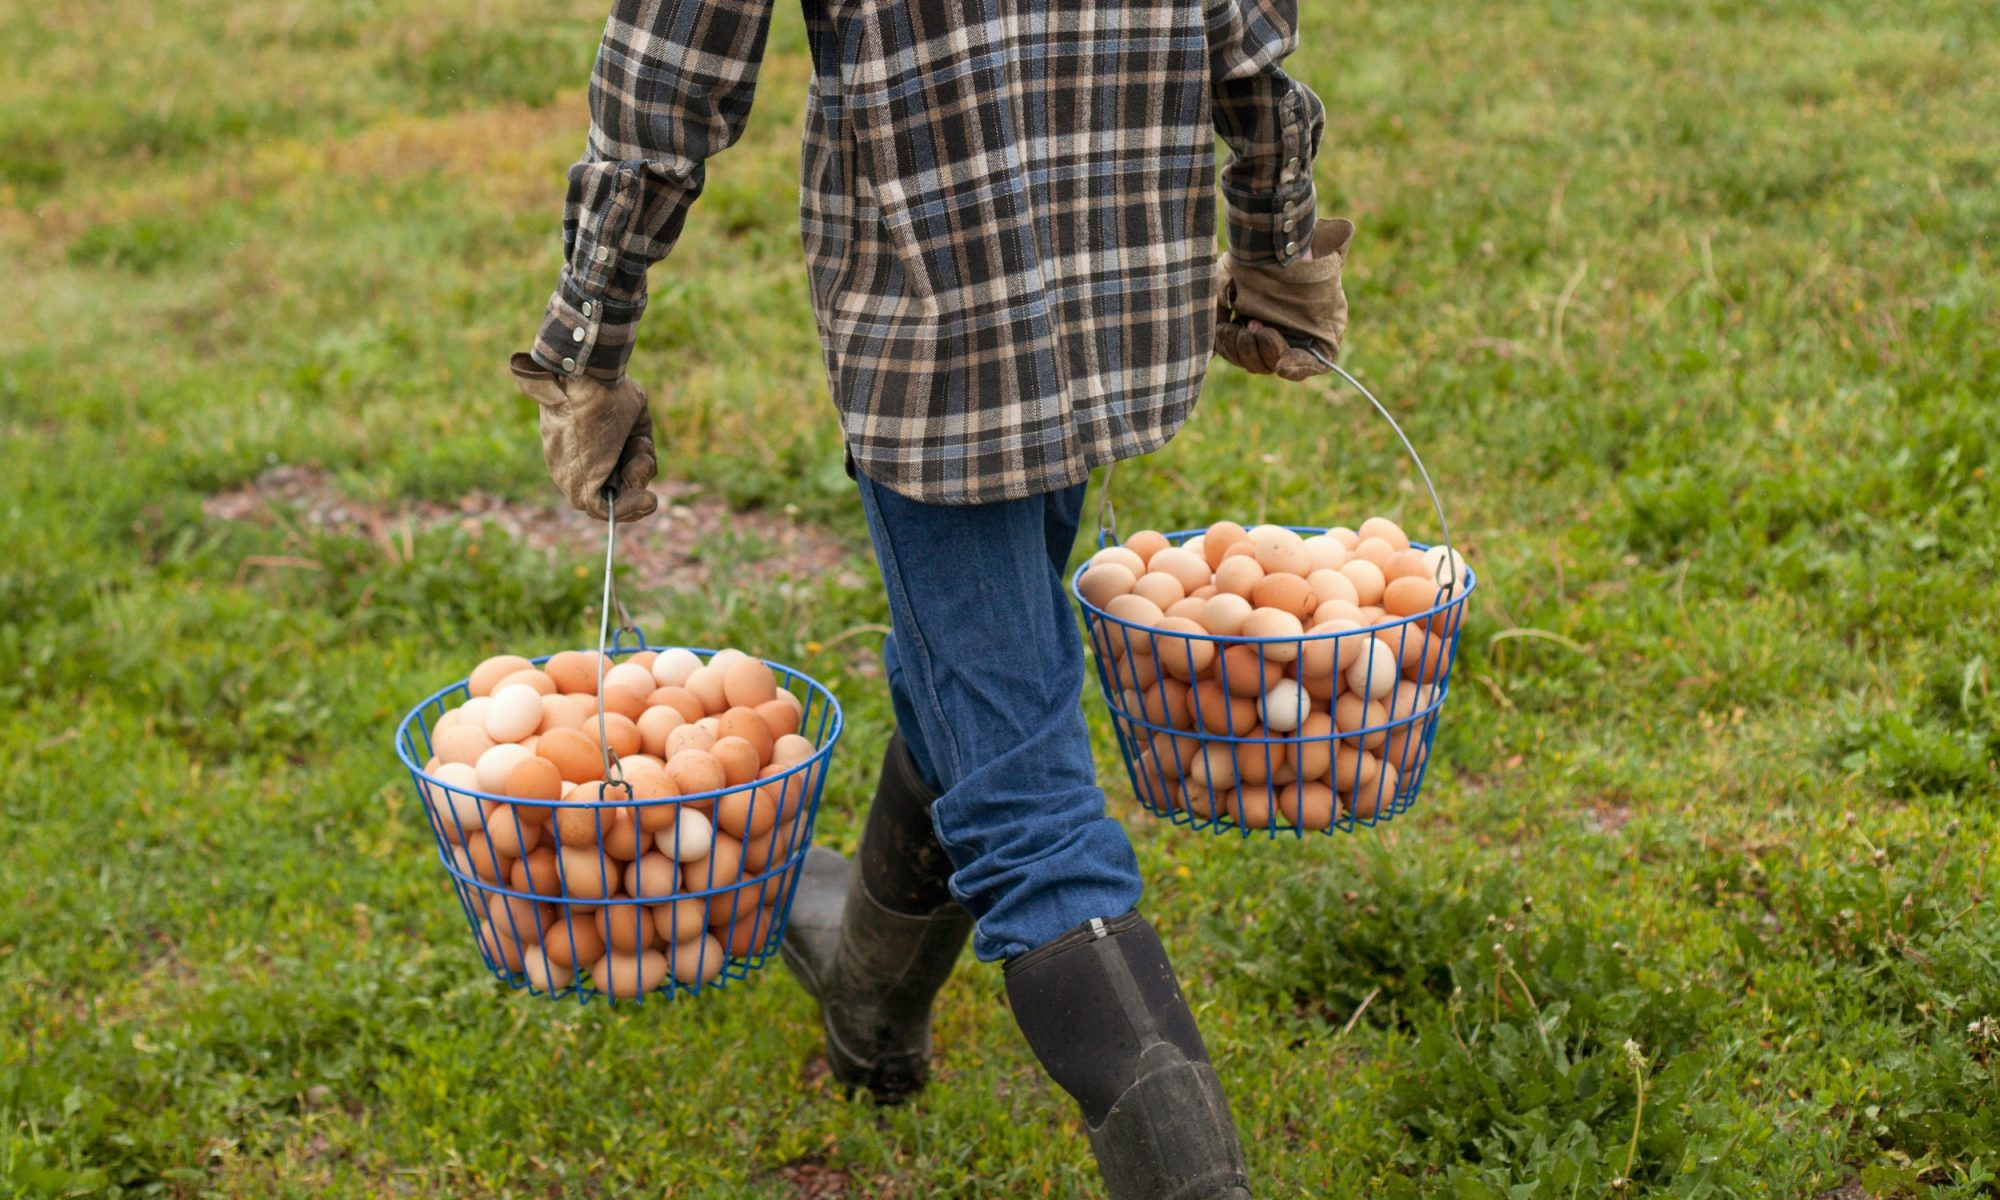 EC: This 8-Year-Old Kid Is Getting Rich Selling Eggs